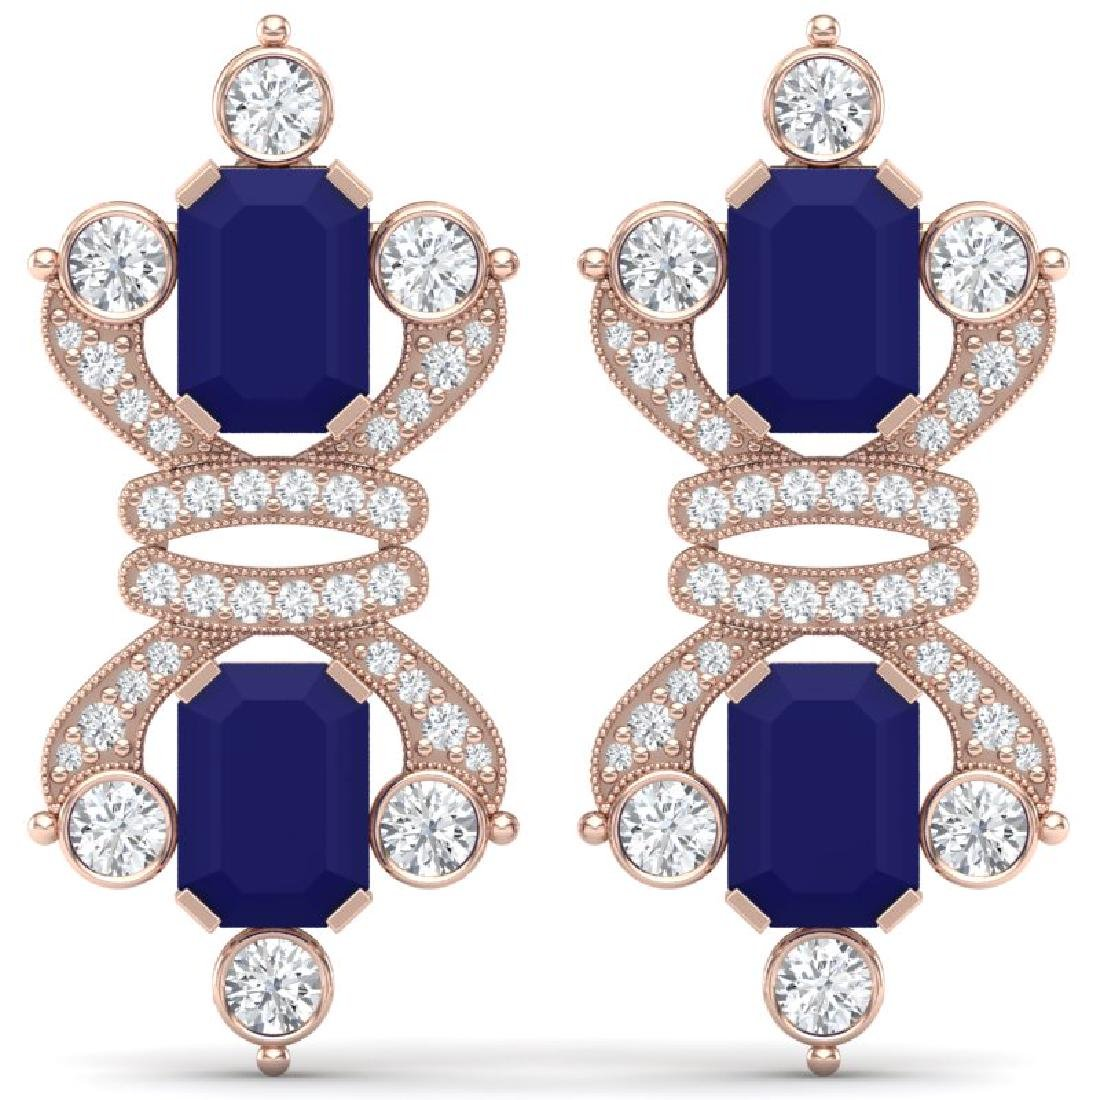 27.36 CTW Royalty Sapphire & VS Diamond Earrings 18K